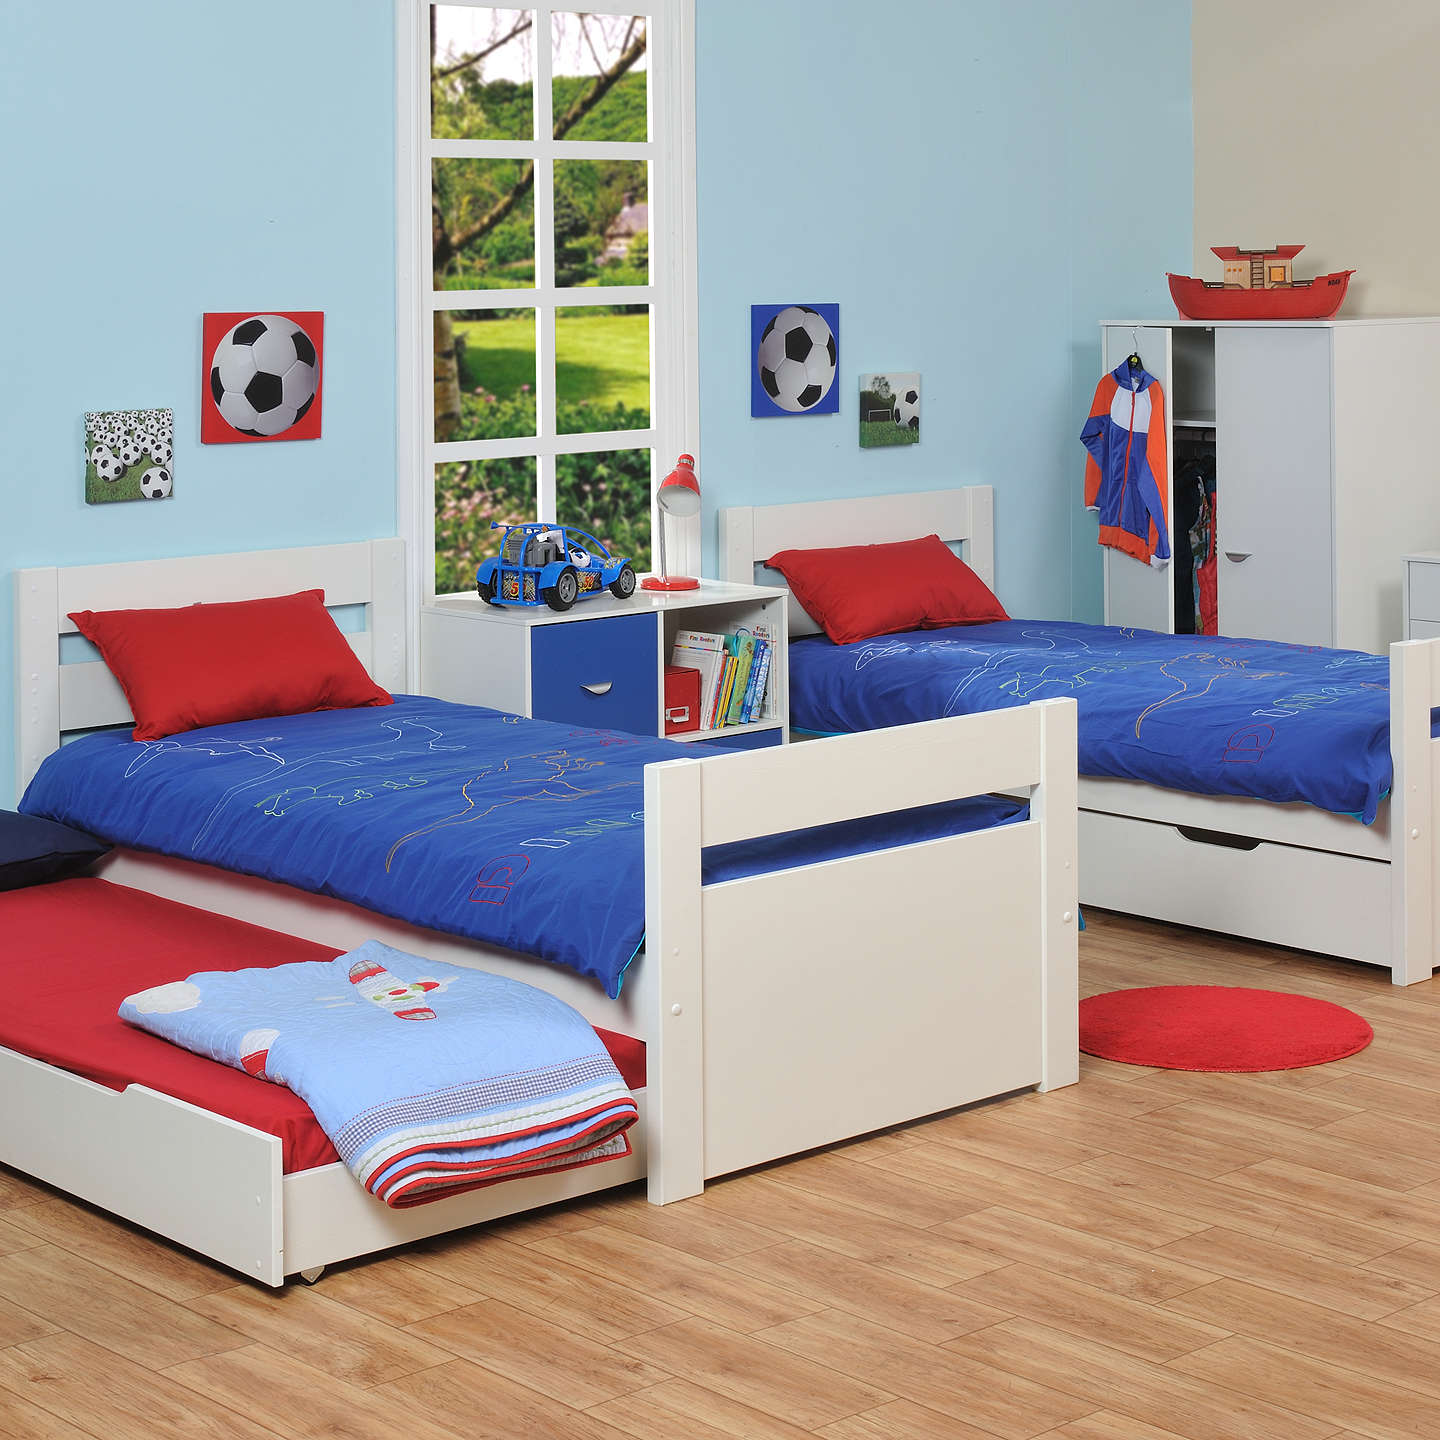 Stompa Originals Multi Bunk Bed with Trundle at John Lewis